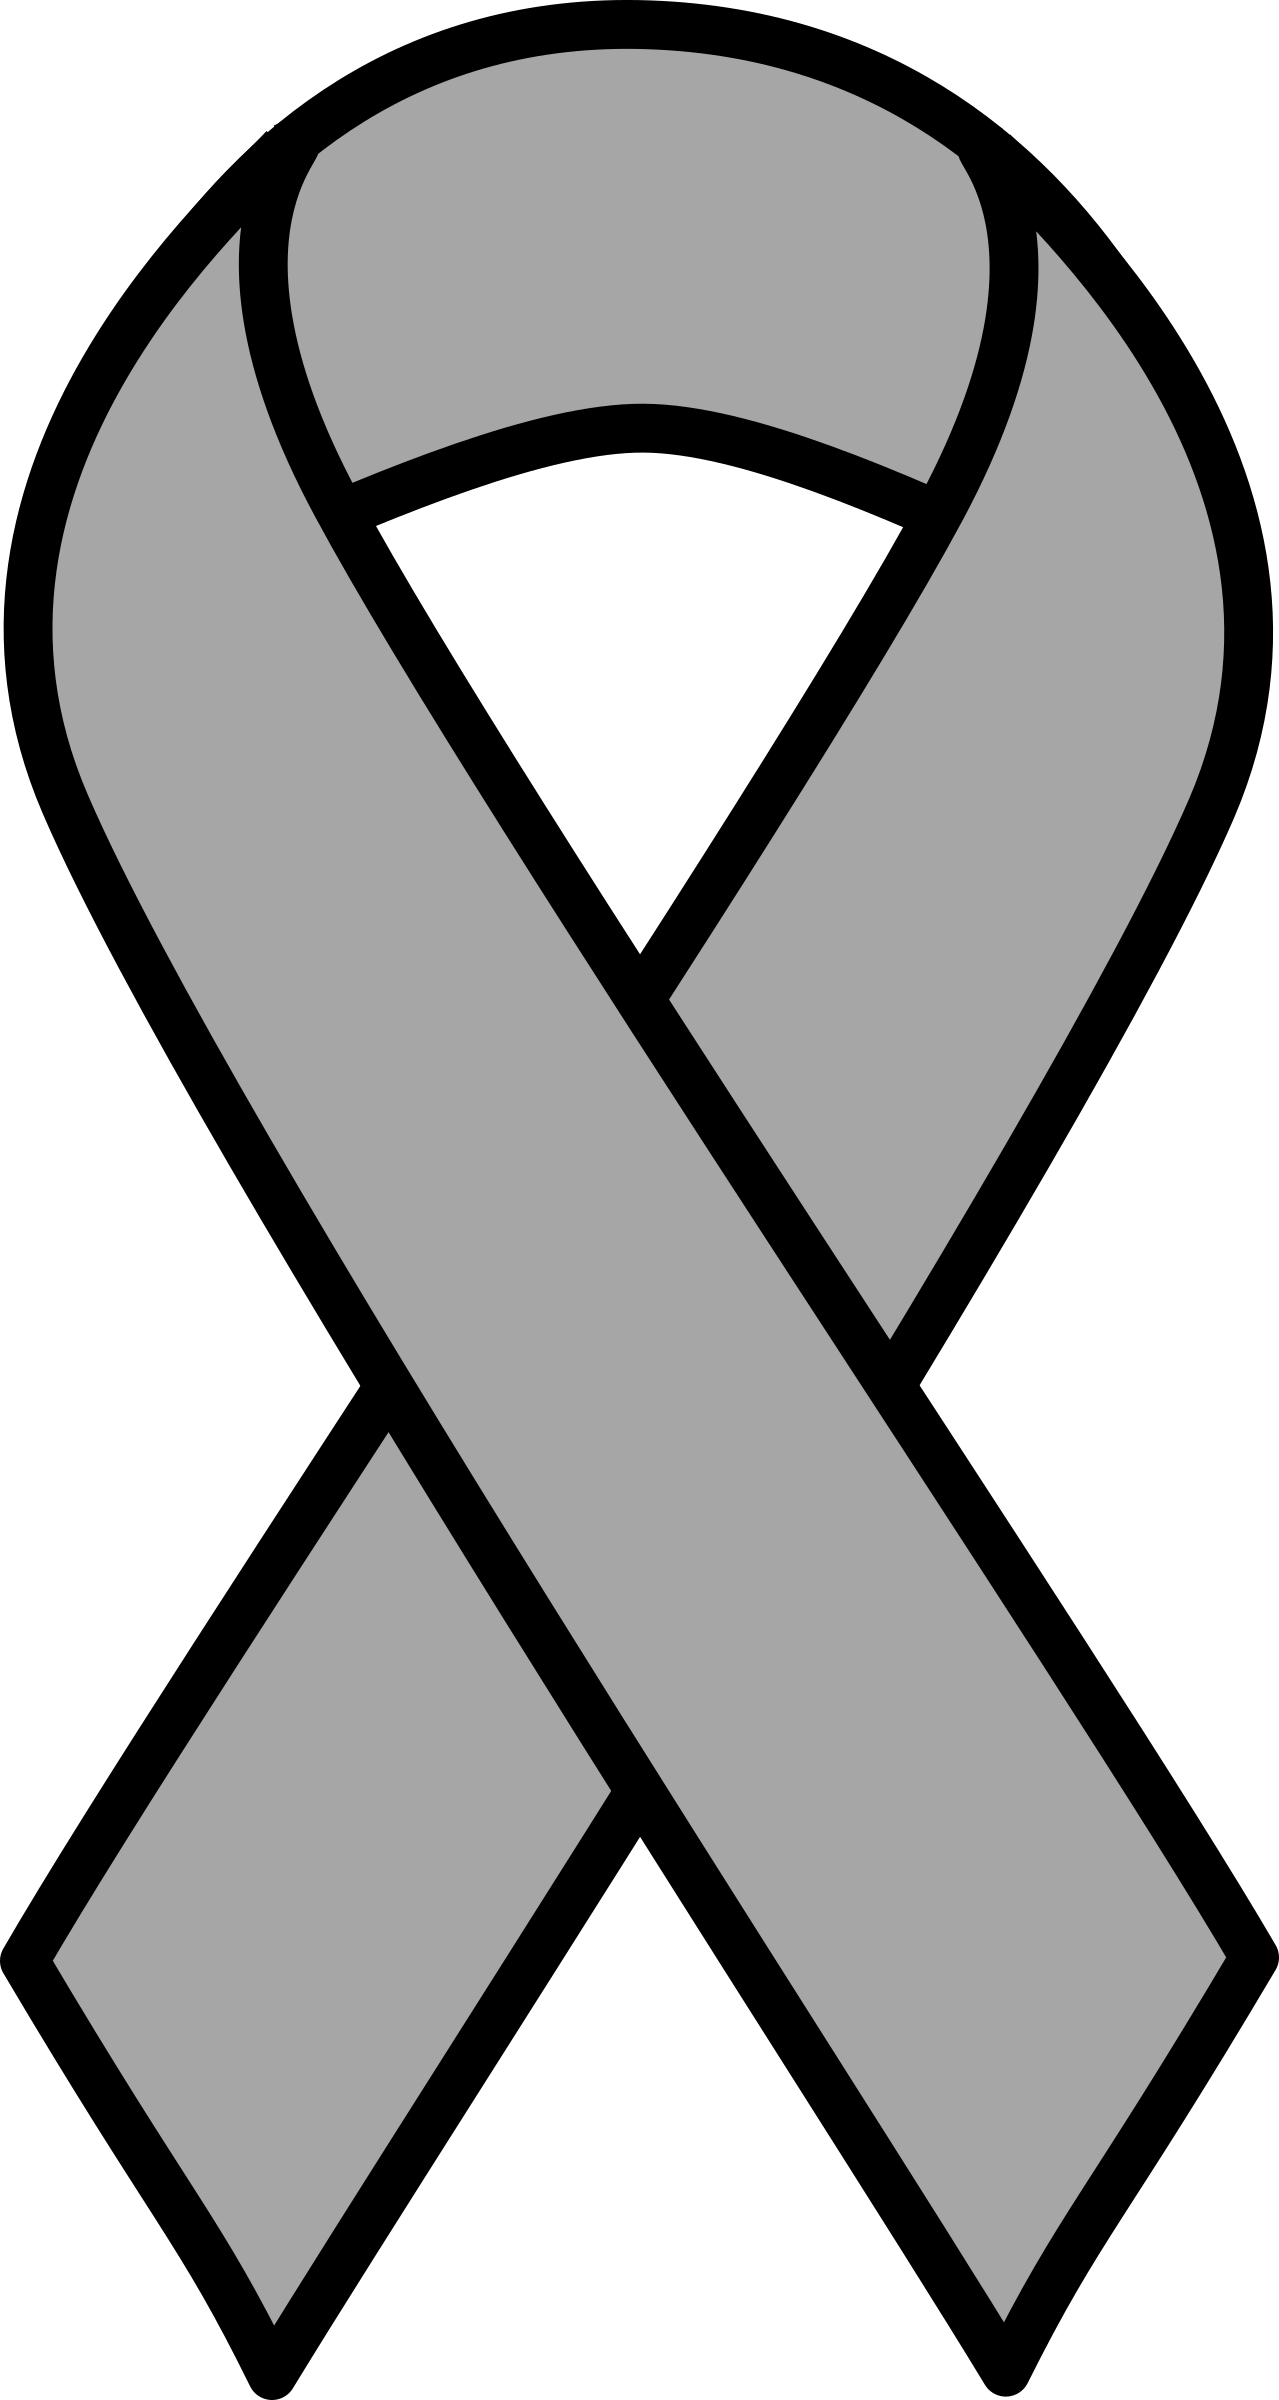 580 Cancer Ribbon free clipart.